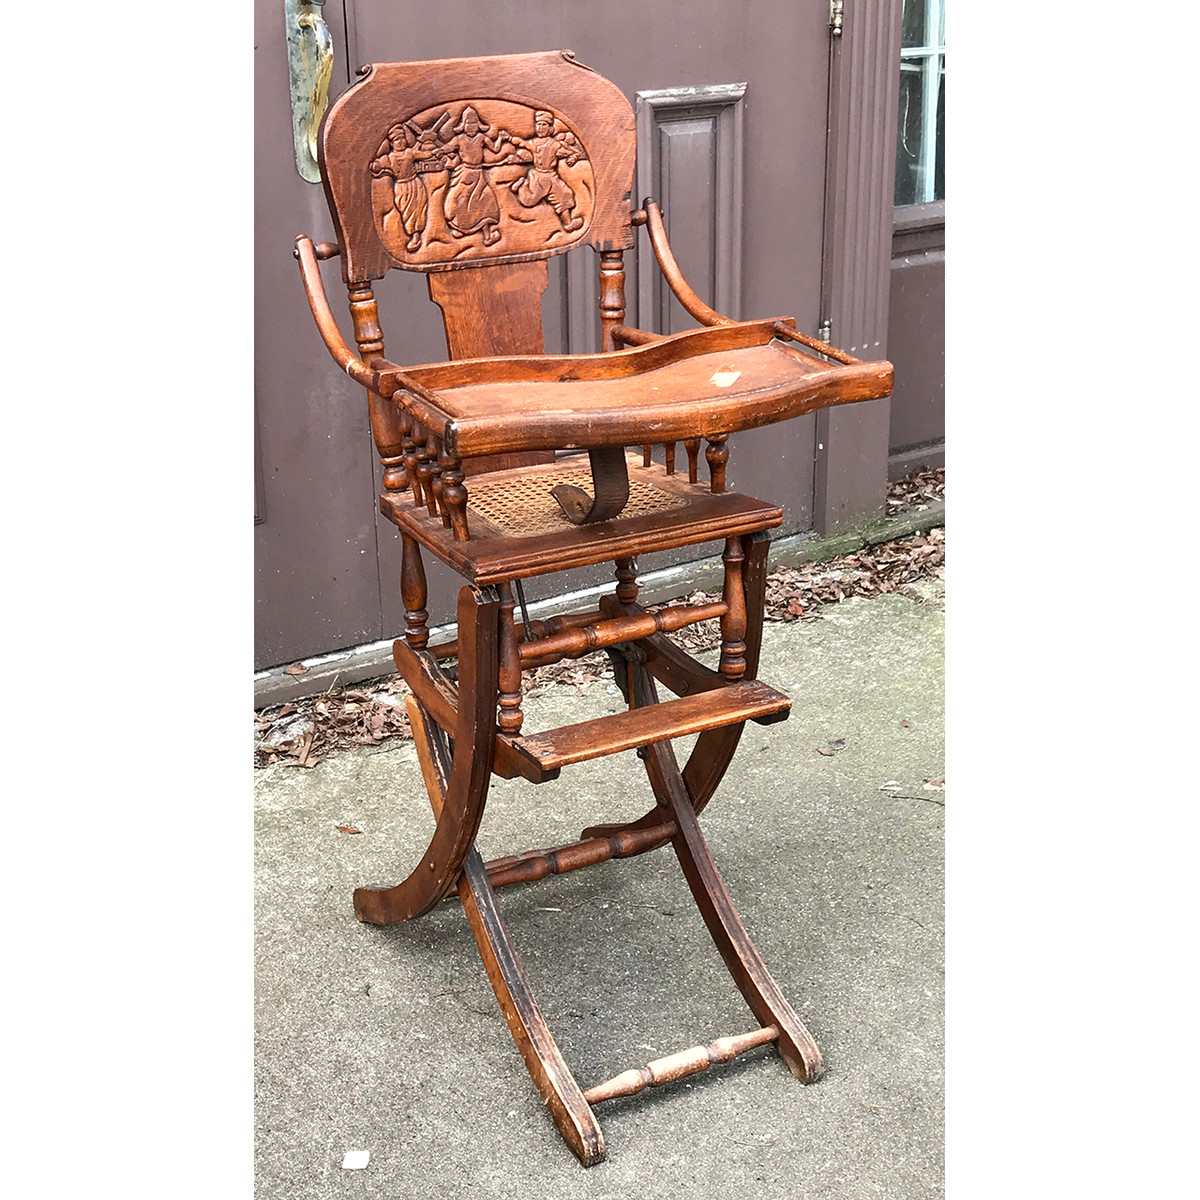 antique high chairs kids game chair f19011 quartersawn oak late victorian adjustable rocking your cart